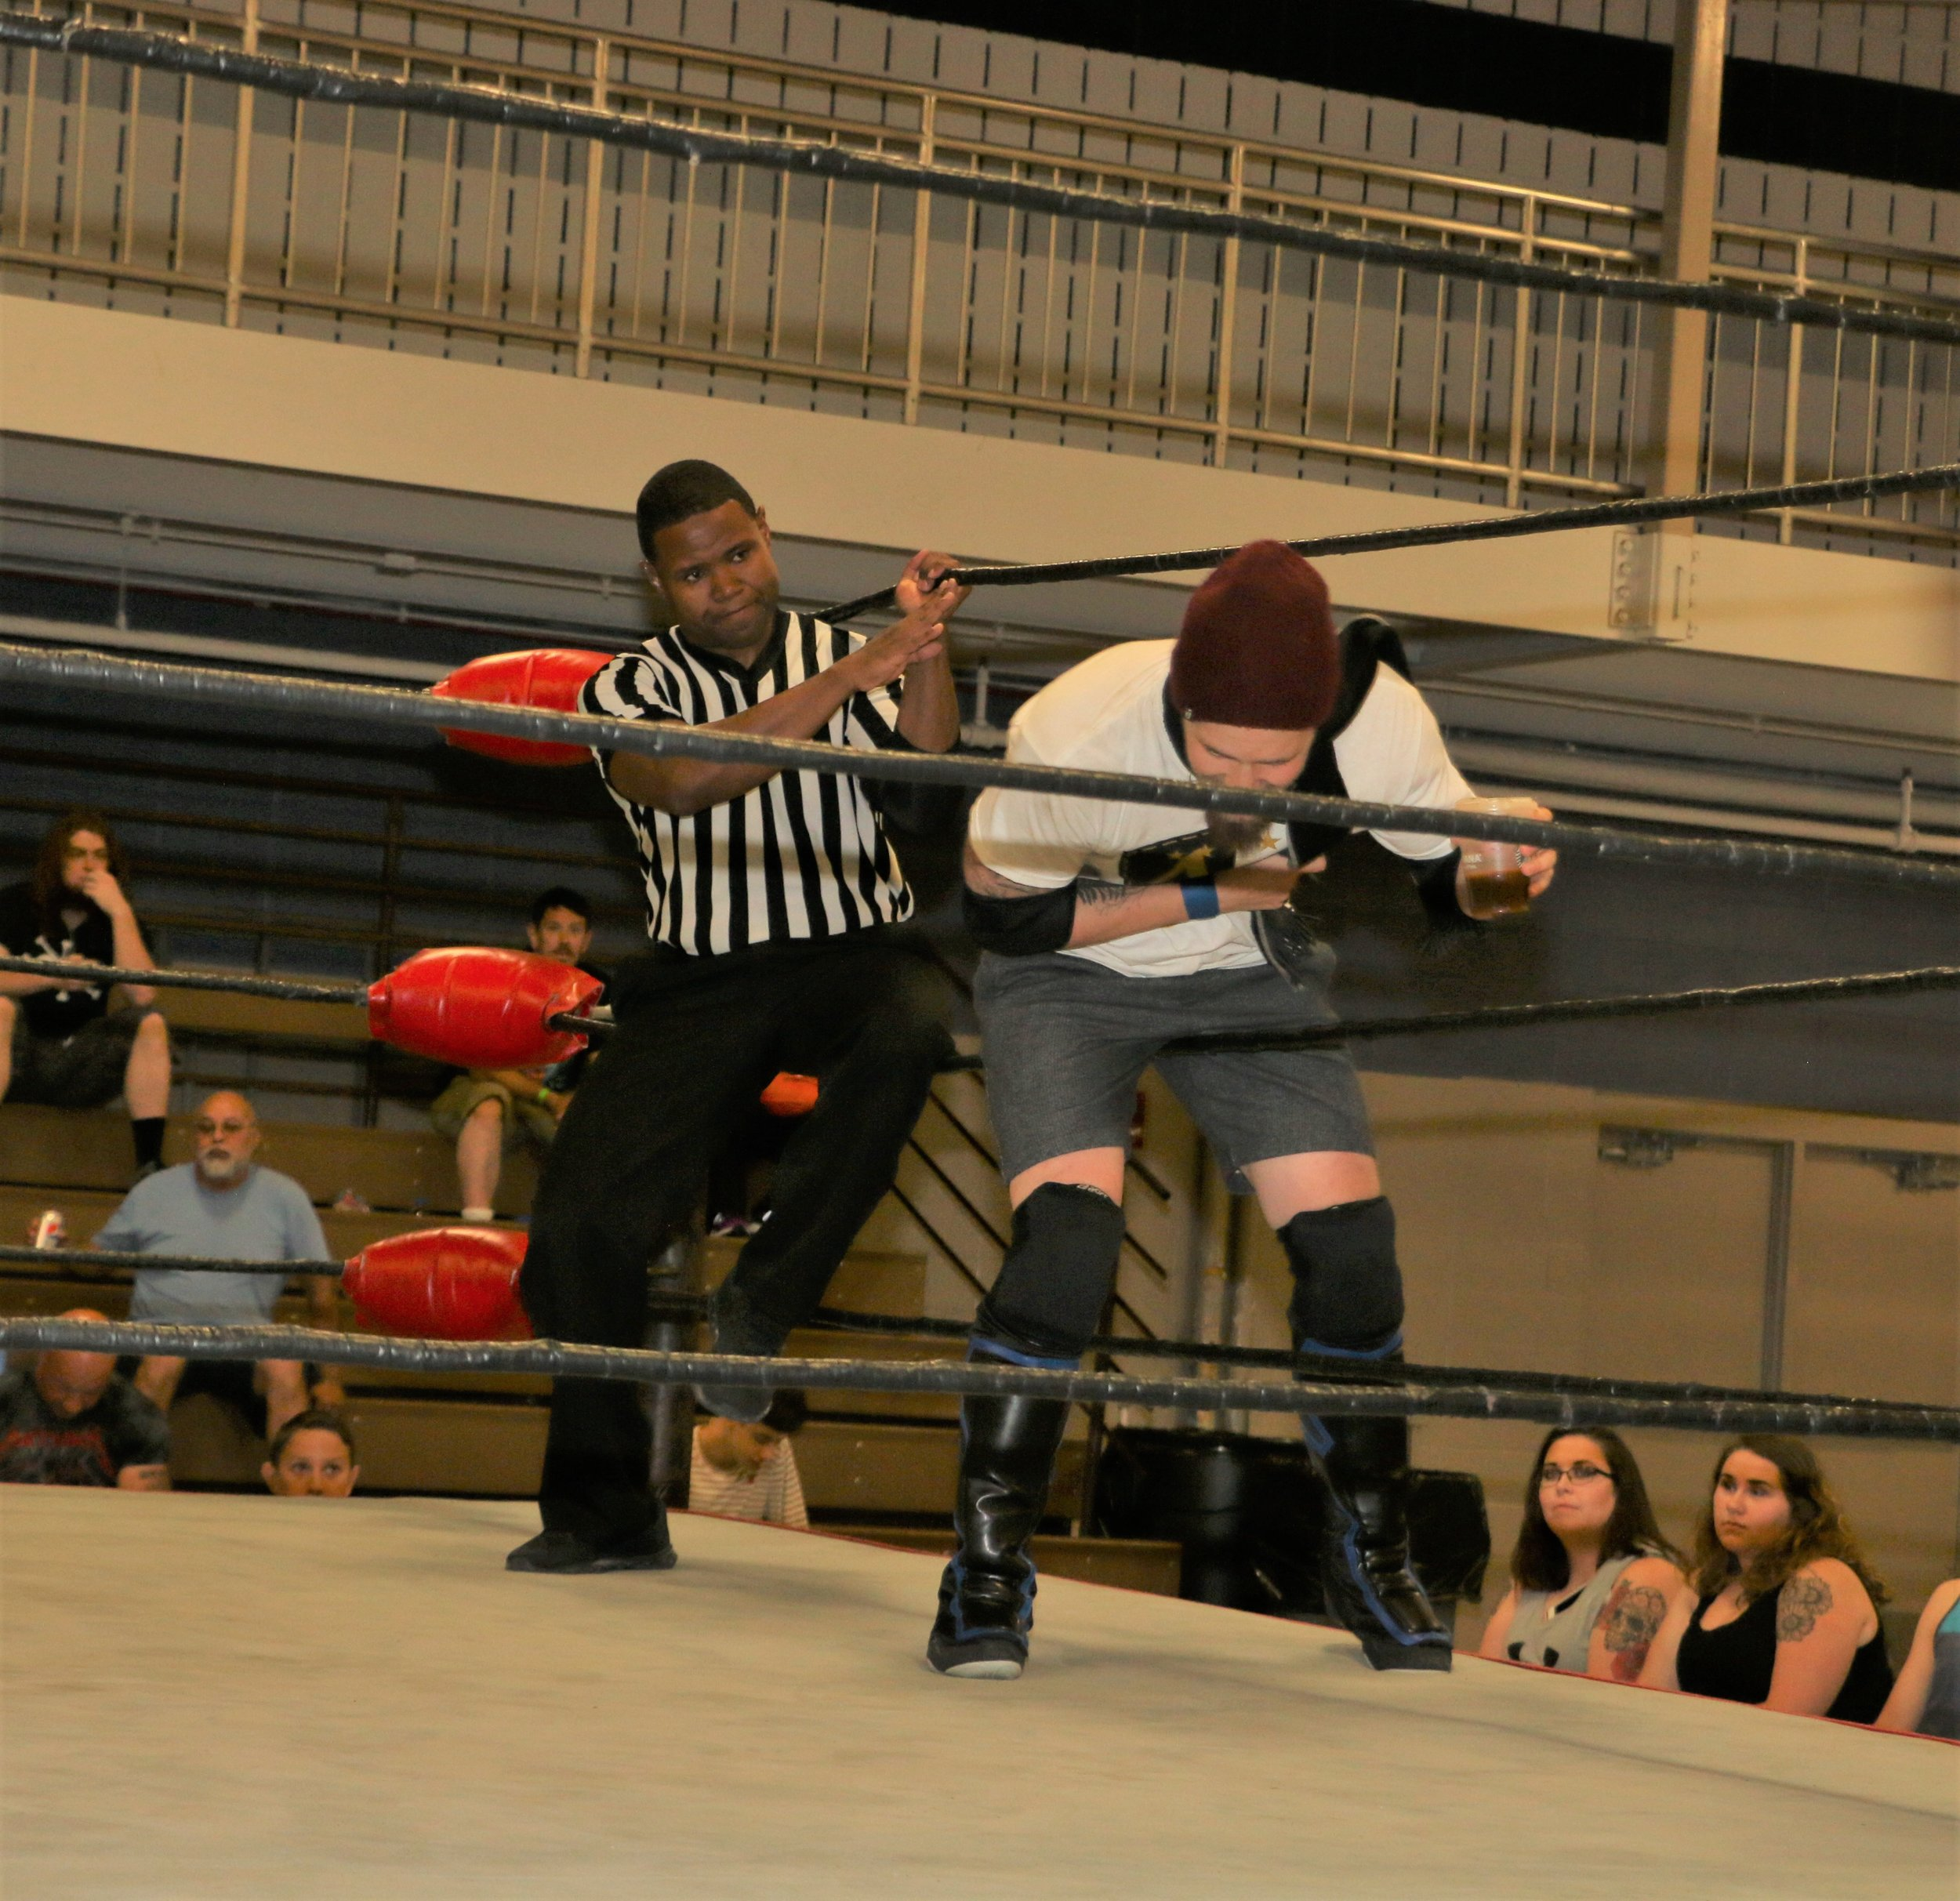 Referee Jessie Bush held the ropes for Aaron Arsenal.